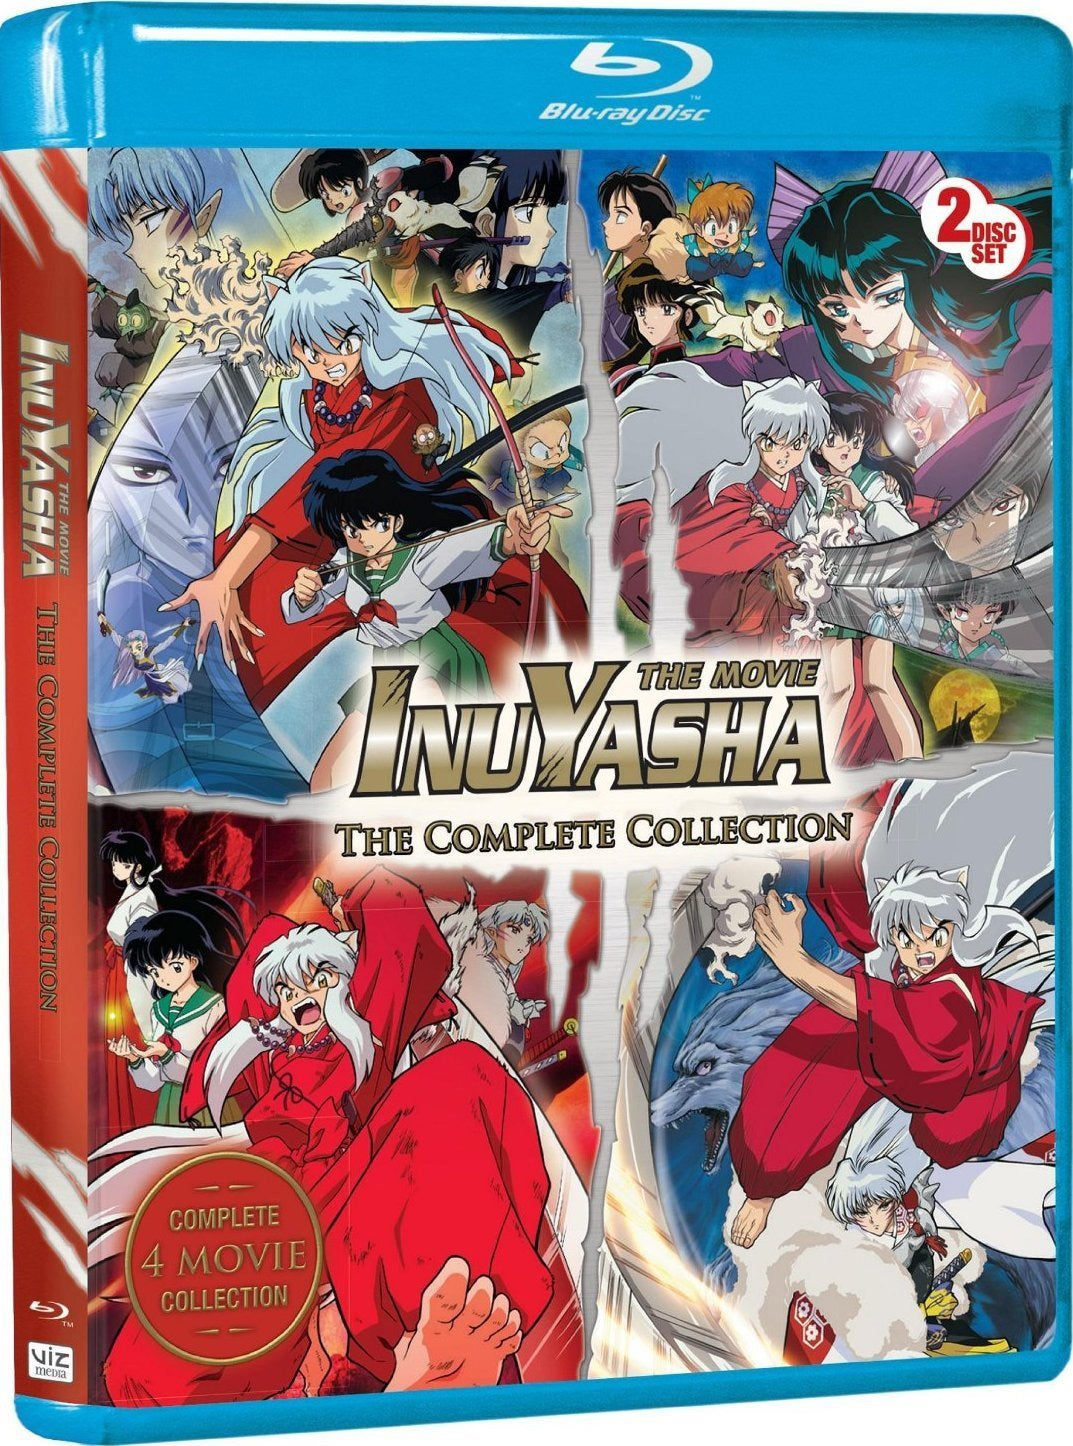 Inuyasha The Movie: The Complete Collection (Blu-ray Disc)